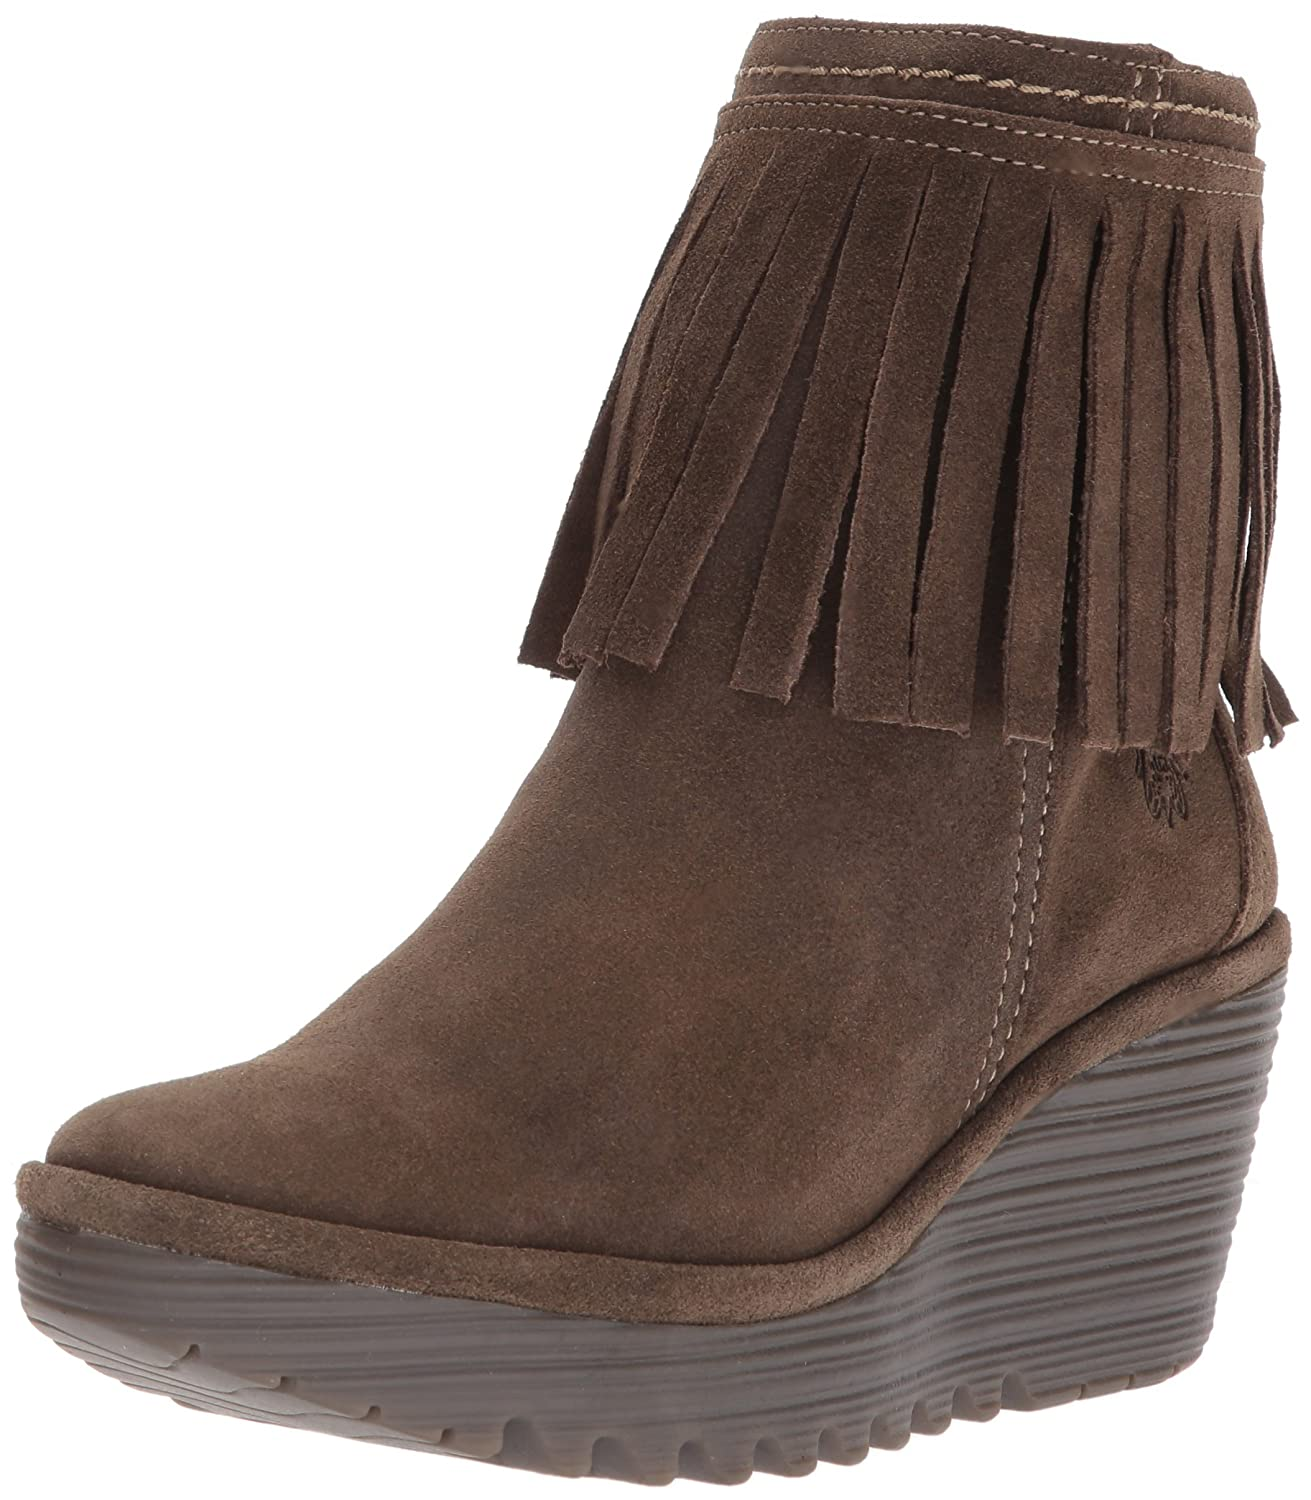 FLY London Women's Yagi766fly Ankle Boot B06WWMTYNF 36 M EU (5.5-6 US)|Sludge Oil Suede